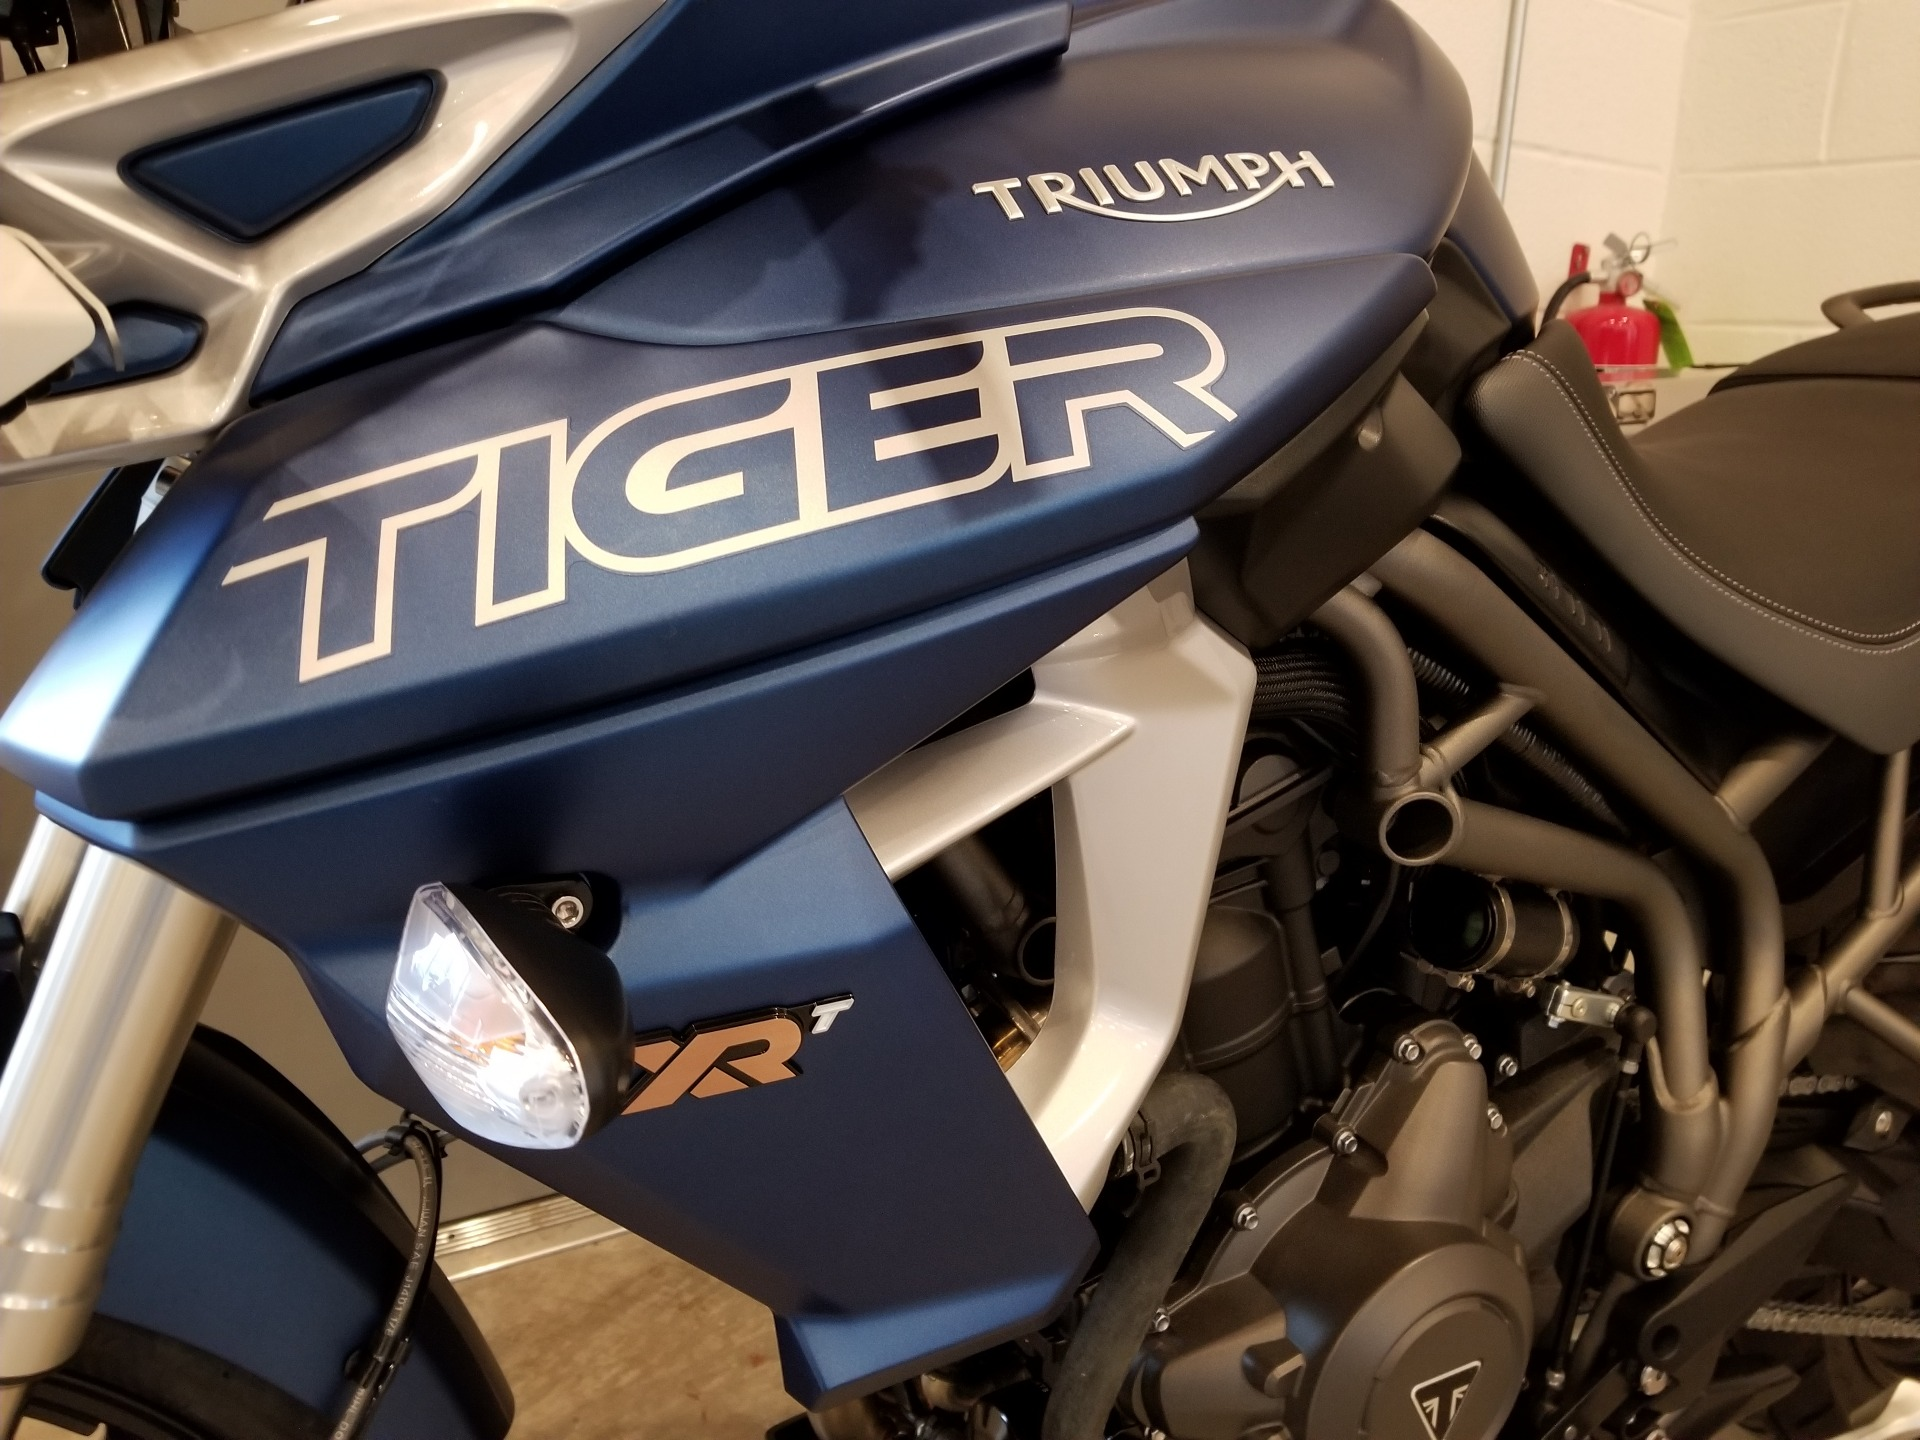 2019 Triumph Tiger 800 XRt in Port Clinton, Pennsylvania - Photo 1